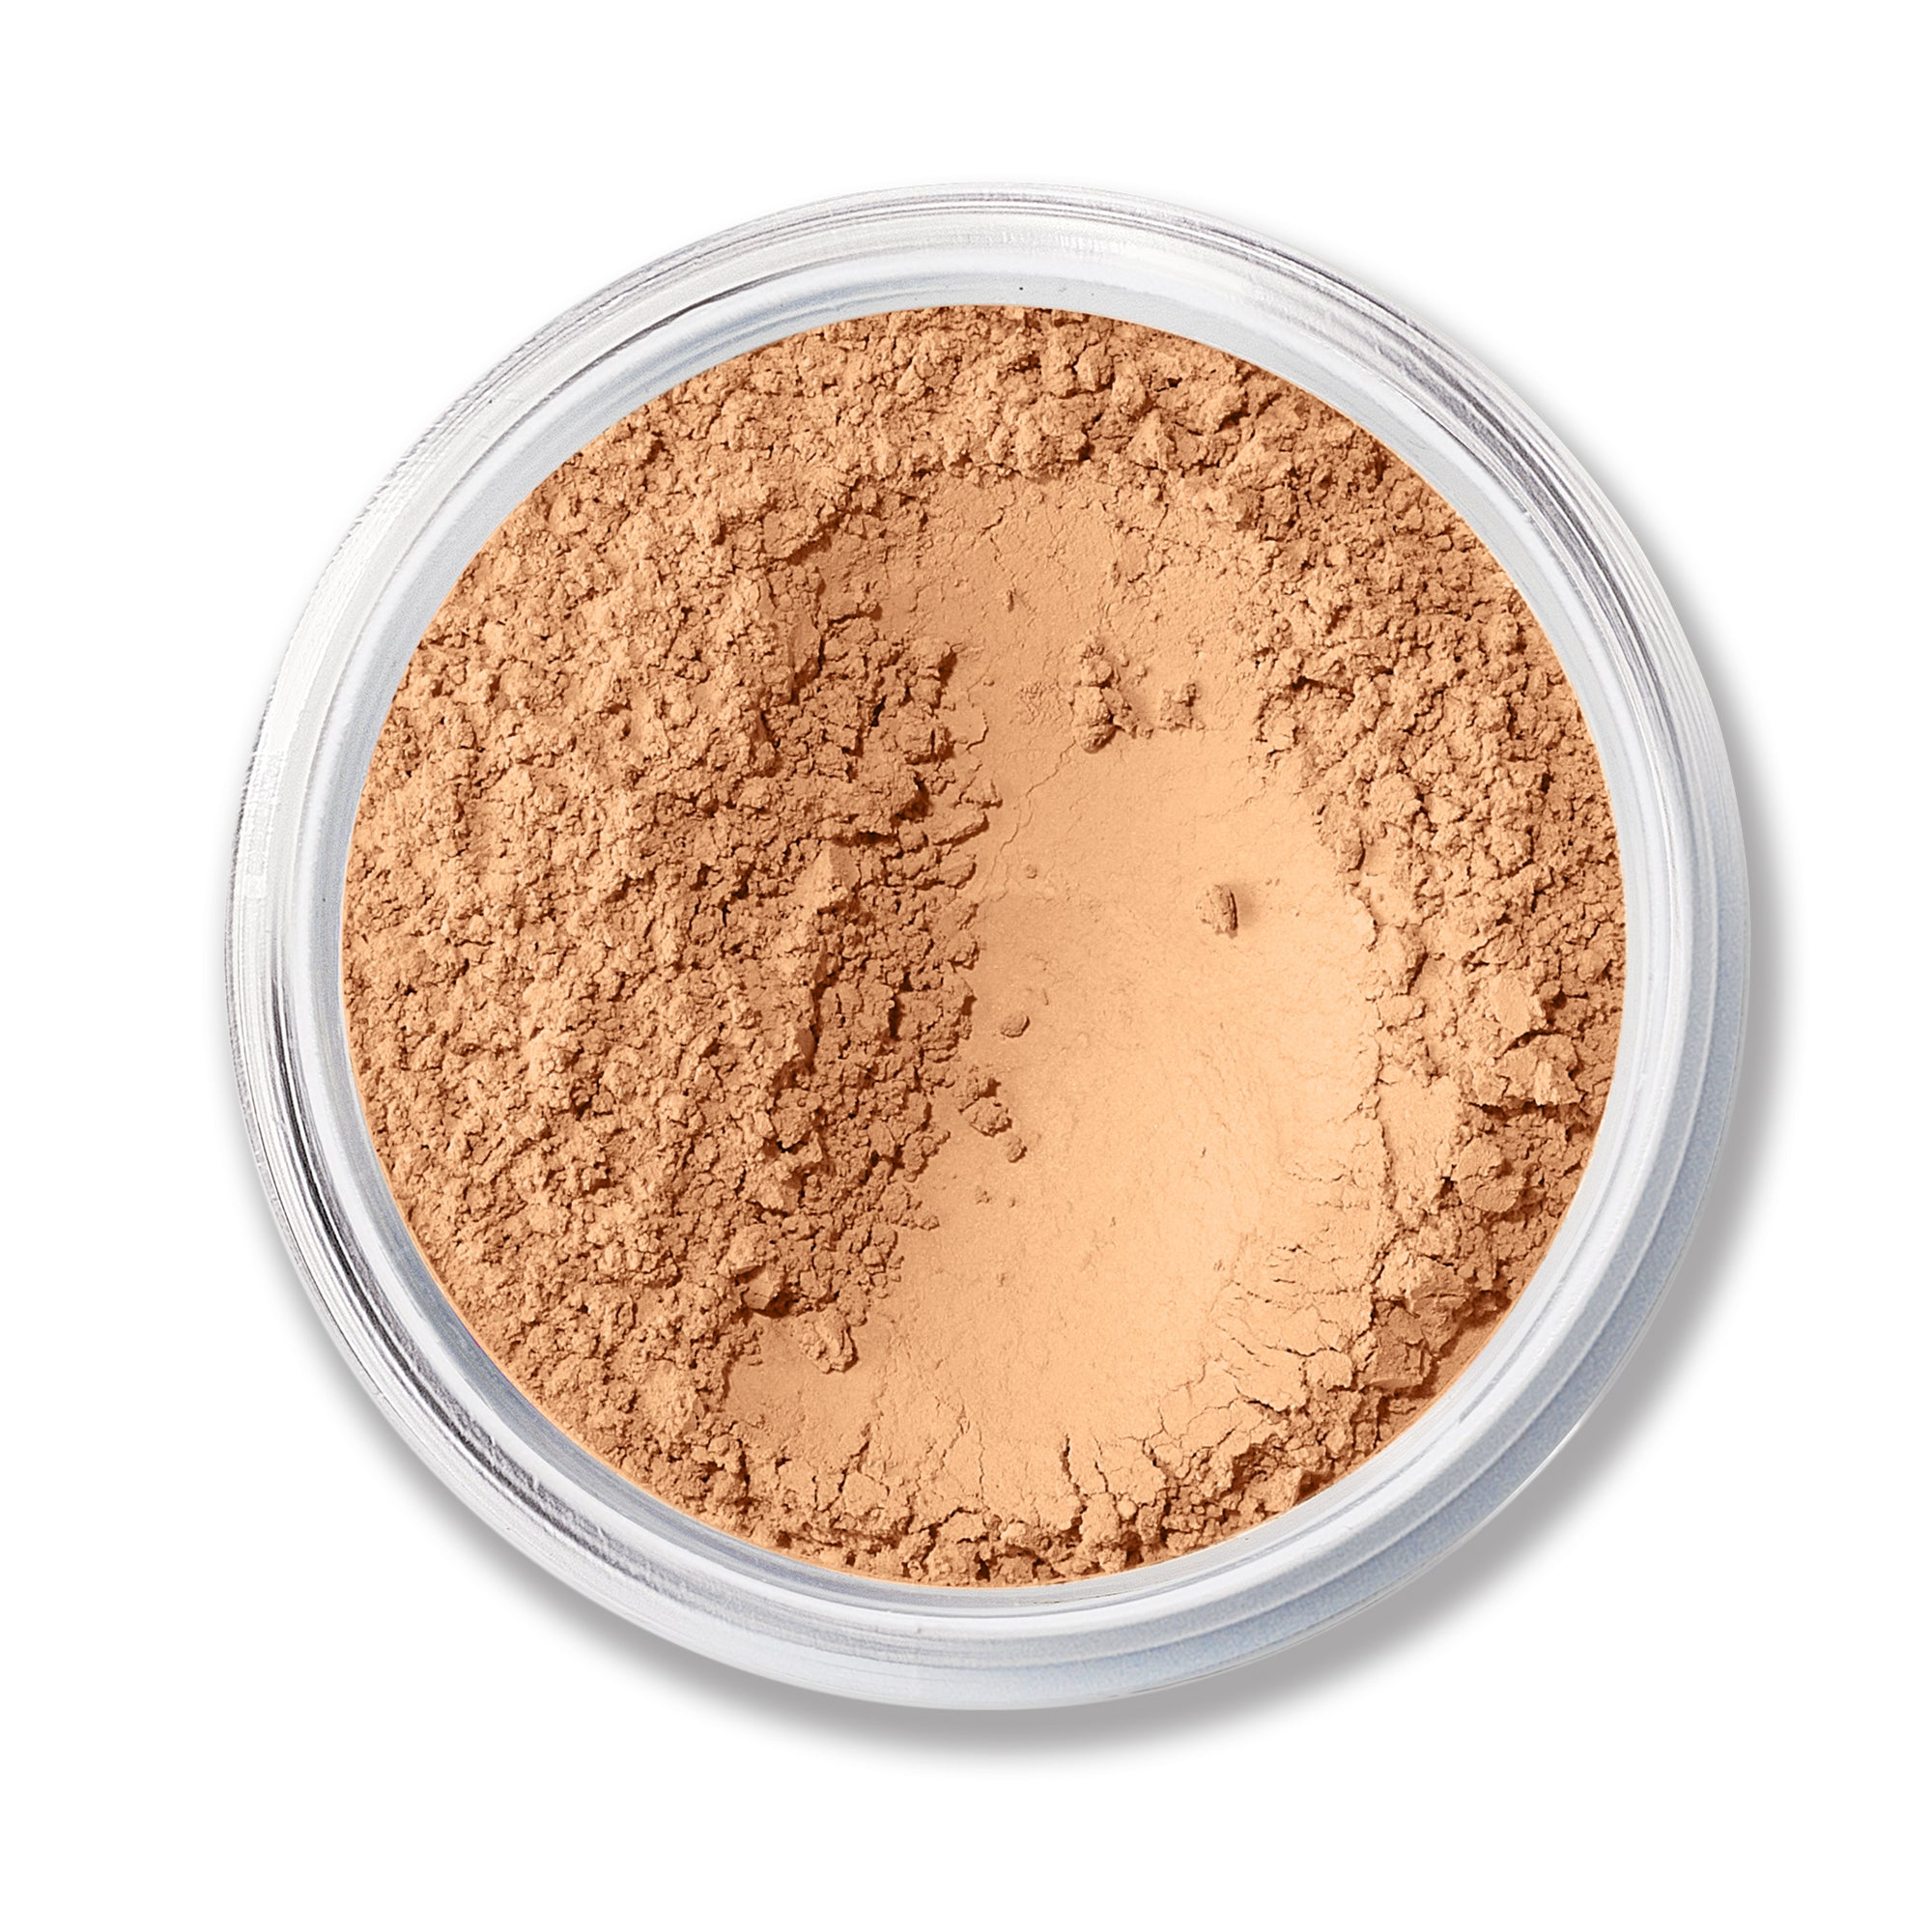 Matte Foundation SPF 15 Tan Nude Matte 17